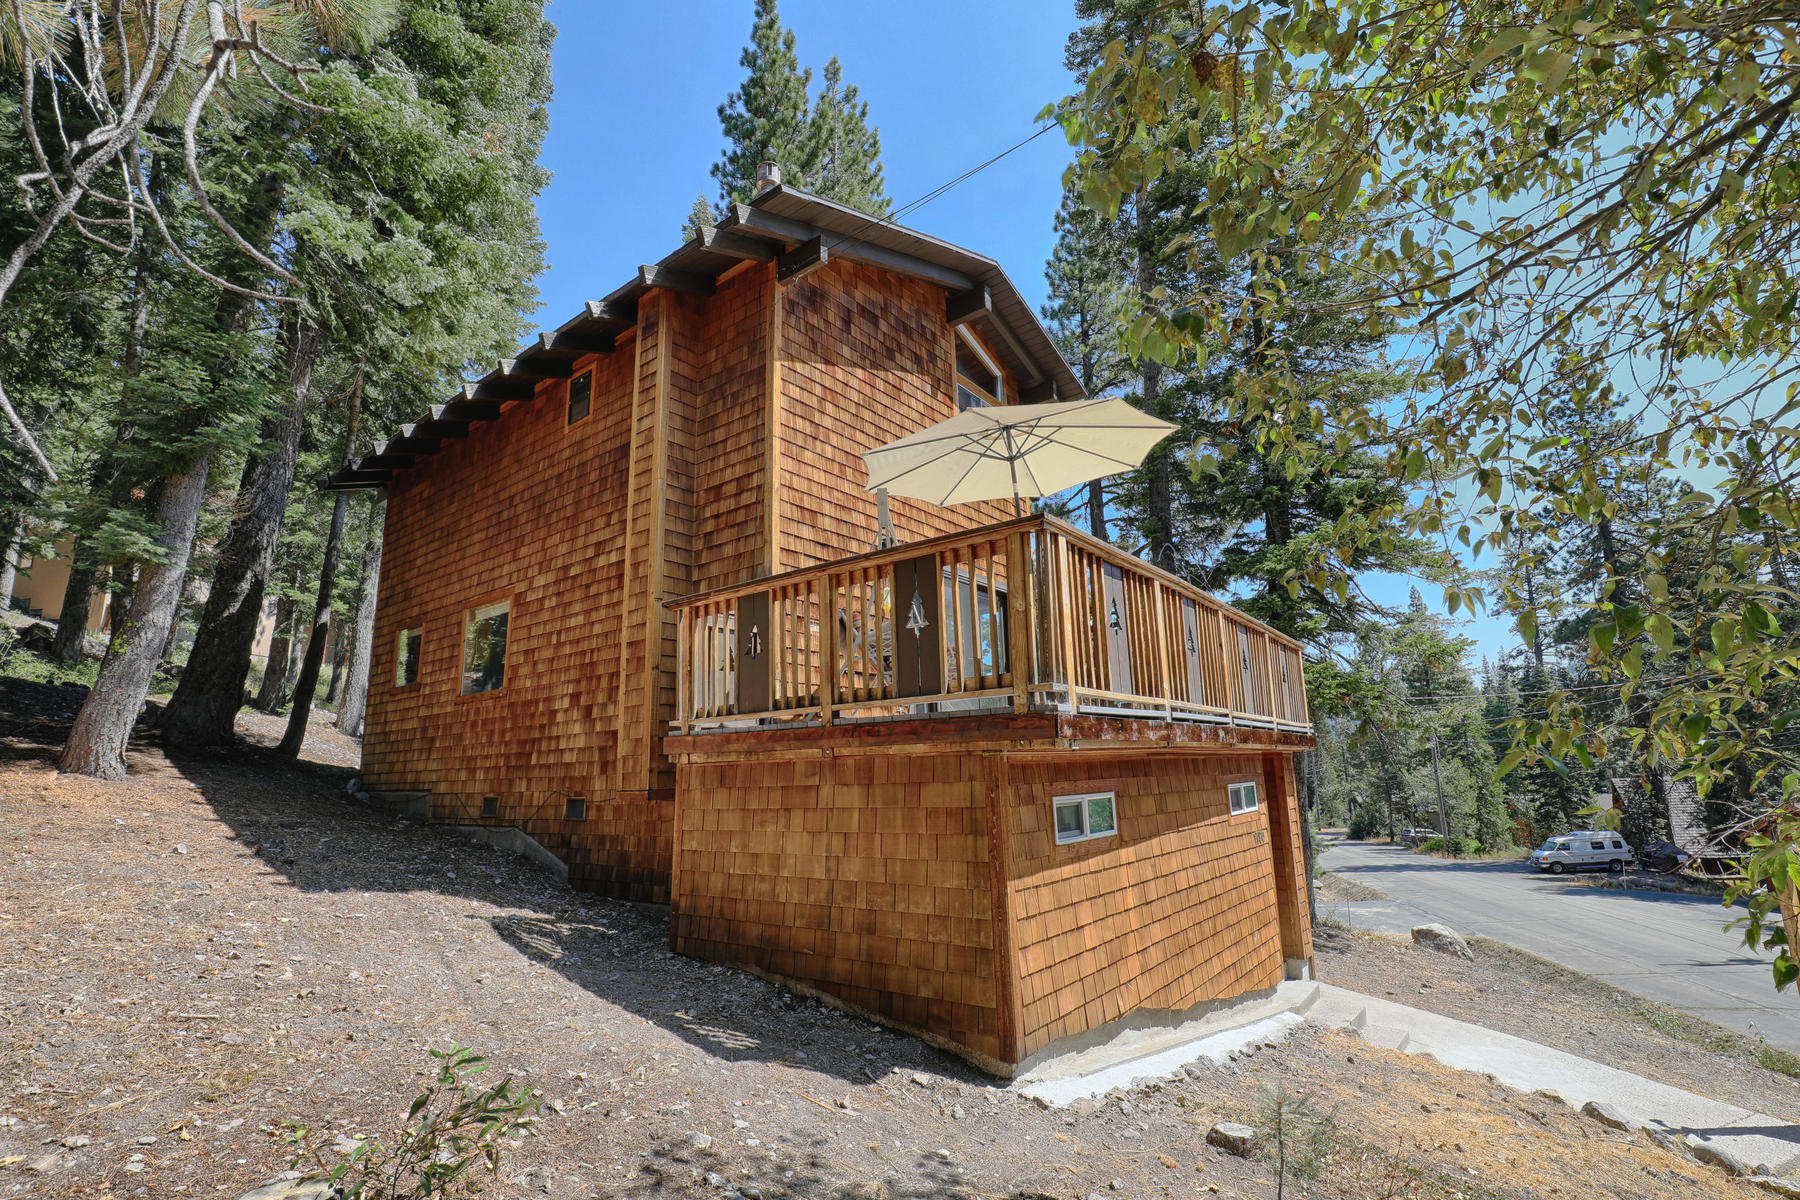 Single Family Home for Active at 1790 Deer Park Drive, Alpine Meadows, CA, 96146 1790 Deer Park Drive Alpine Meadows, California 96146 United States